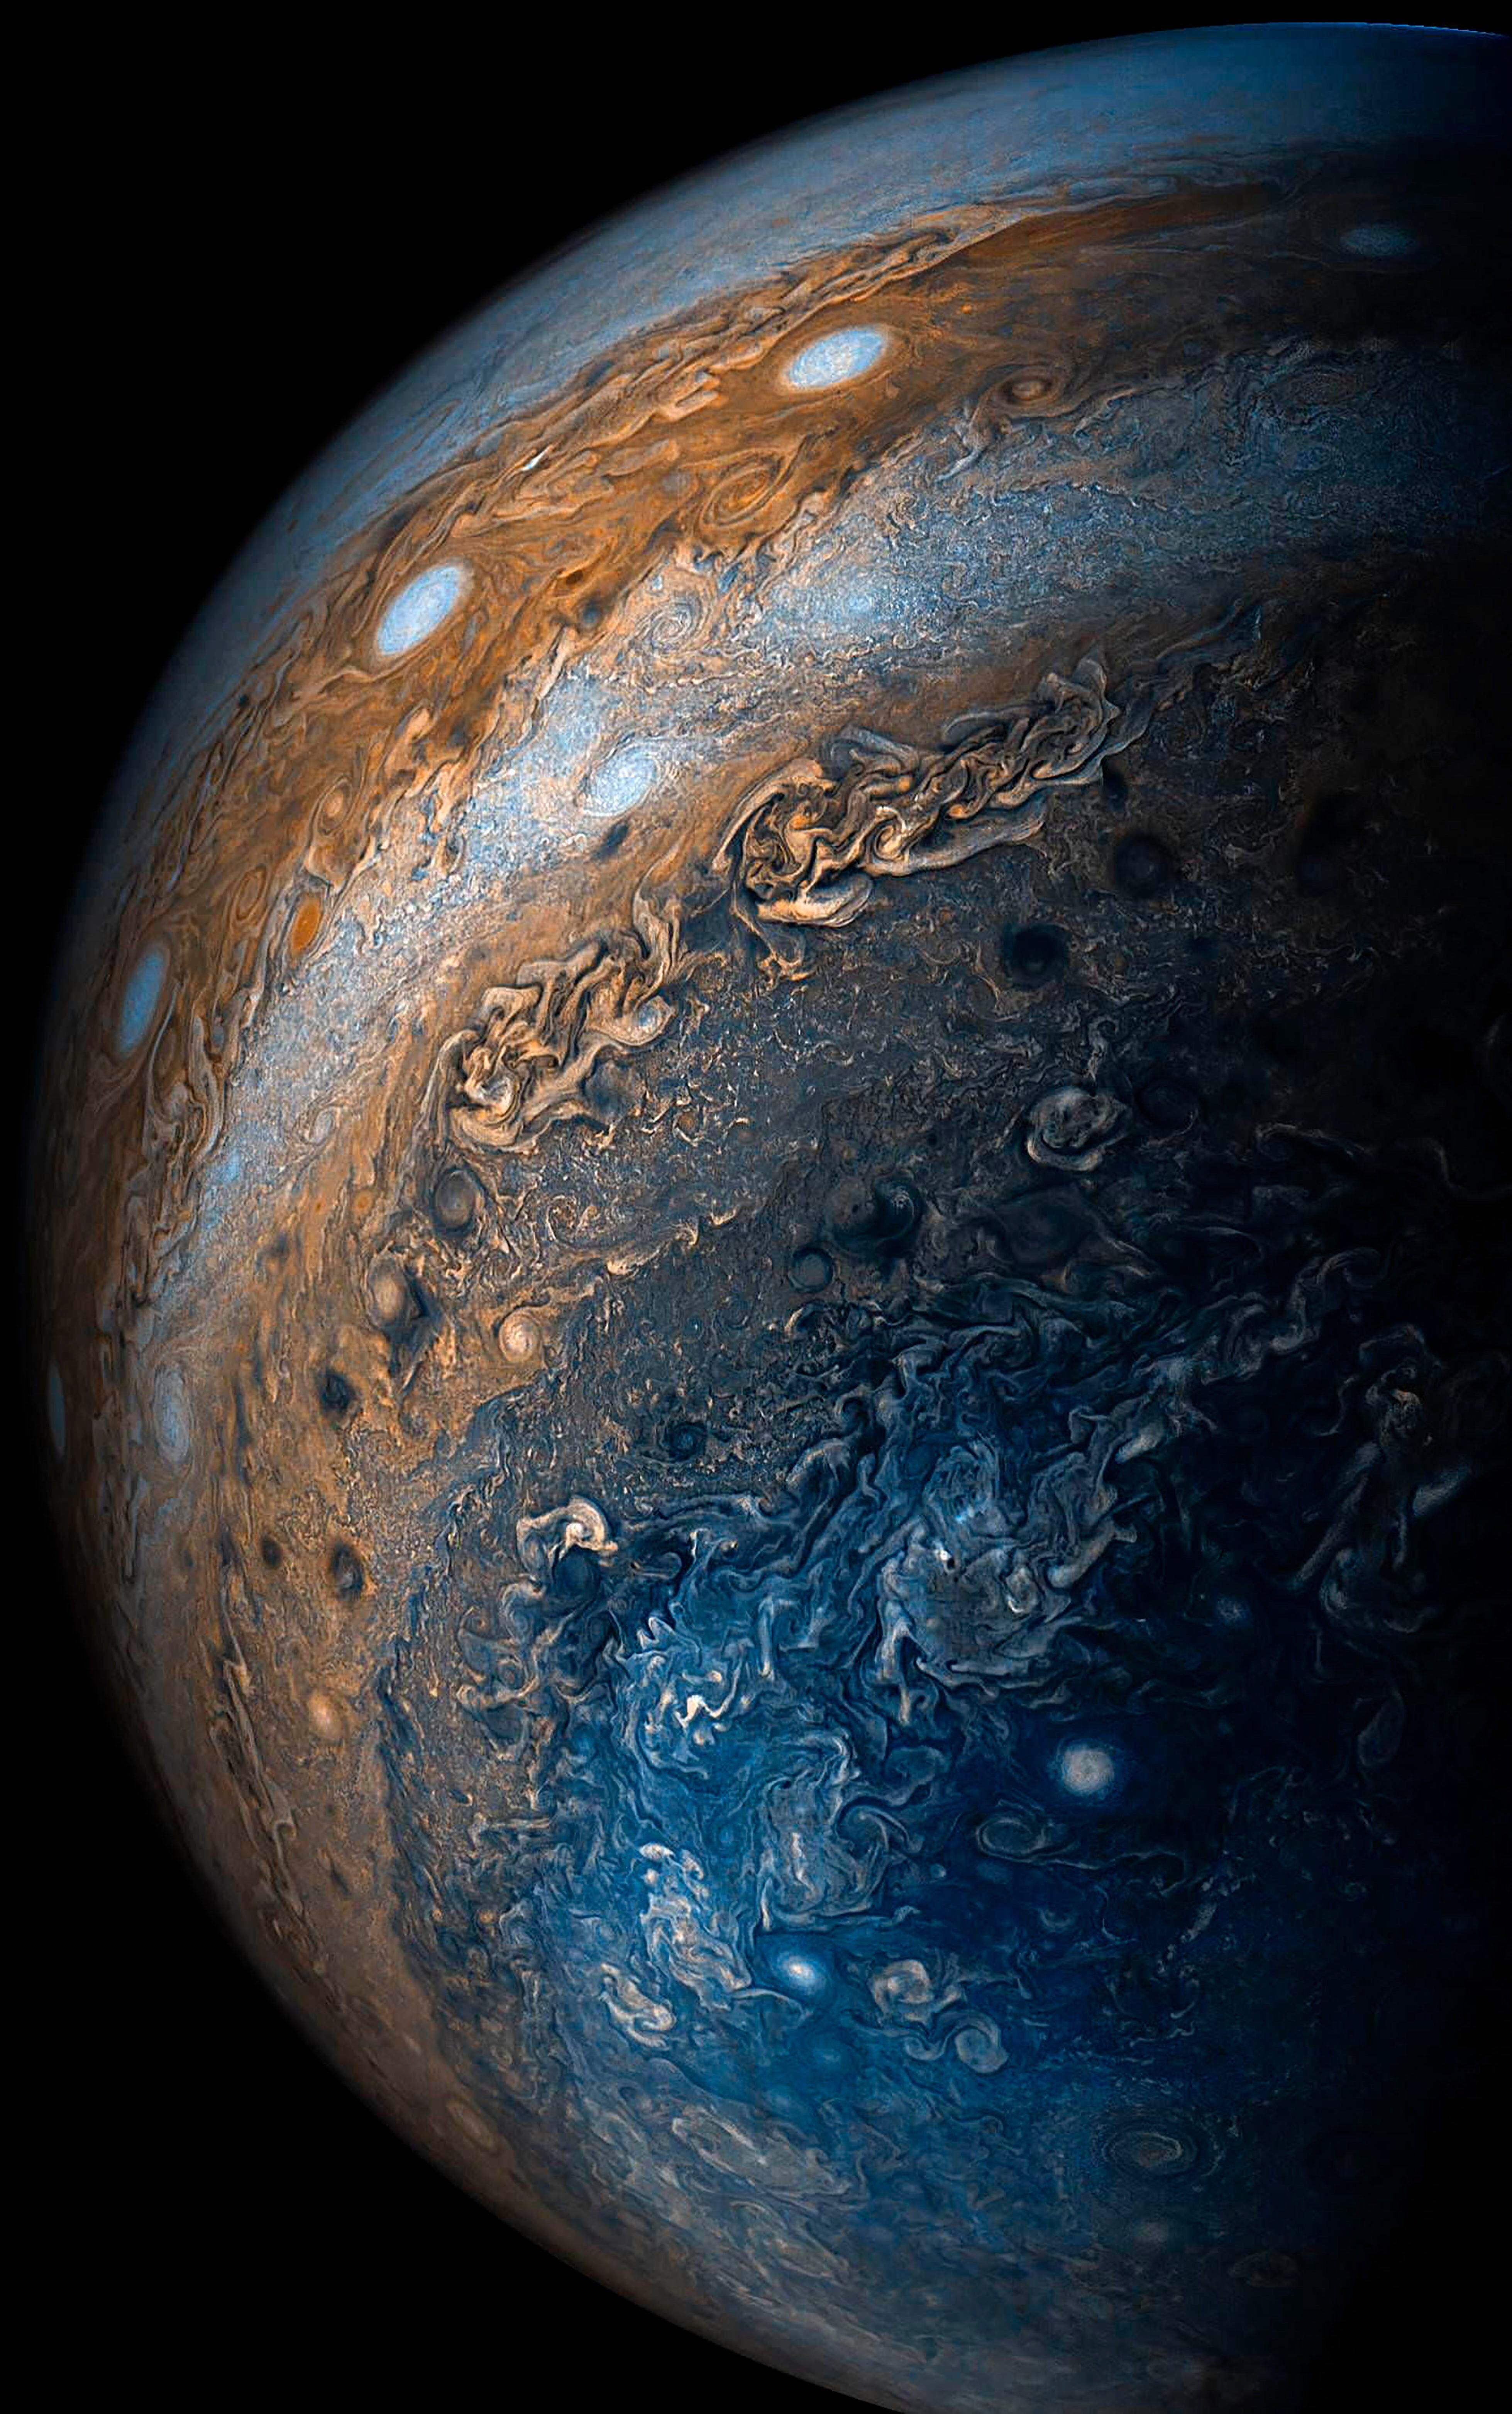 Jupiter Iphone Wallpapers Iphonewallpaper4k Iphonewallpaperfall Iphonewallpaperhdoriginal Iphonewallpape Jupiter Planet Jupiter Wallpaper Space Pictures